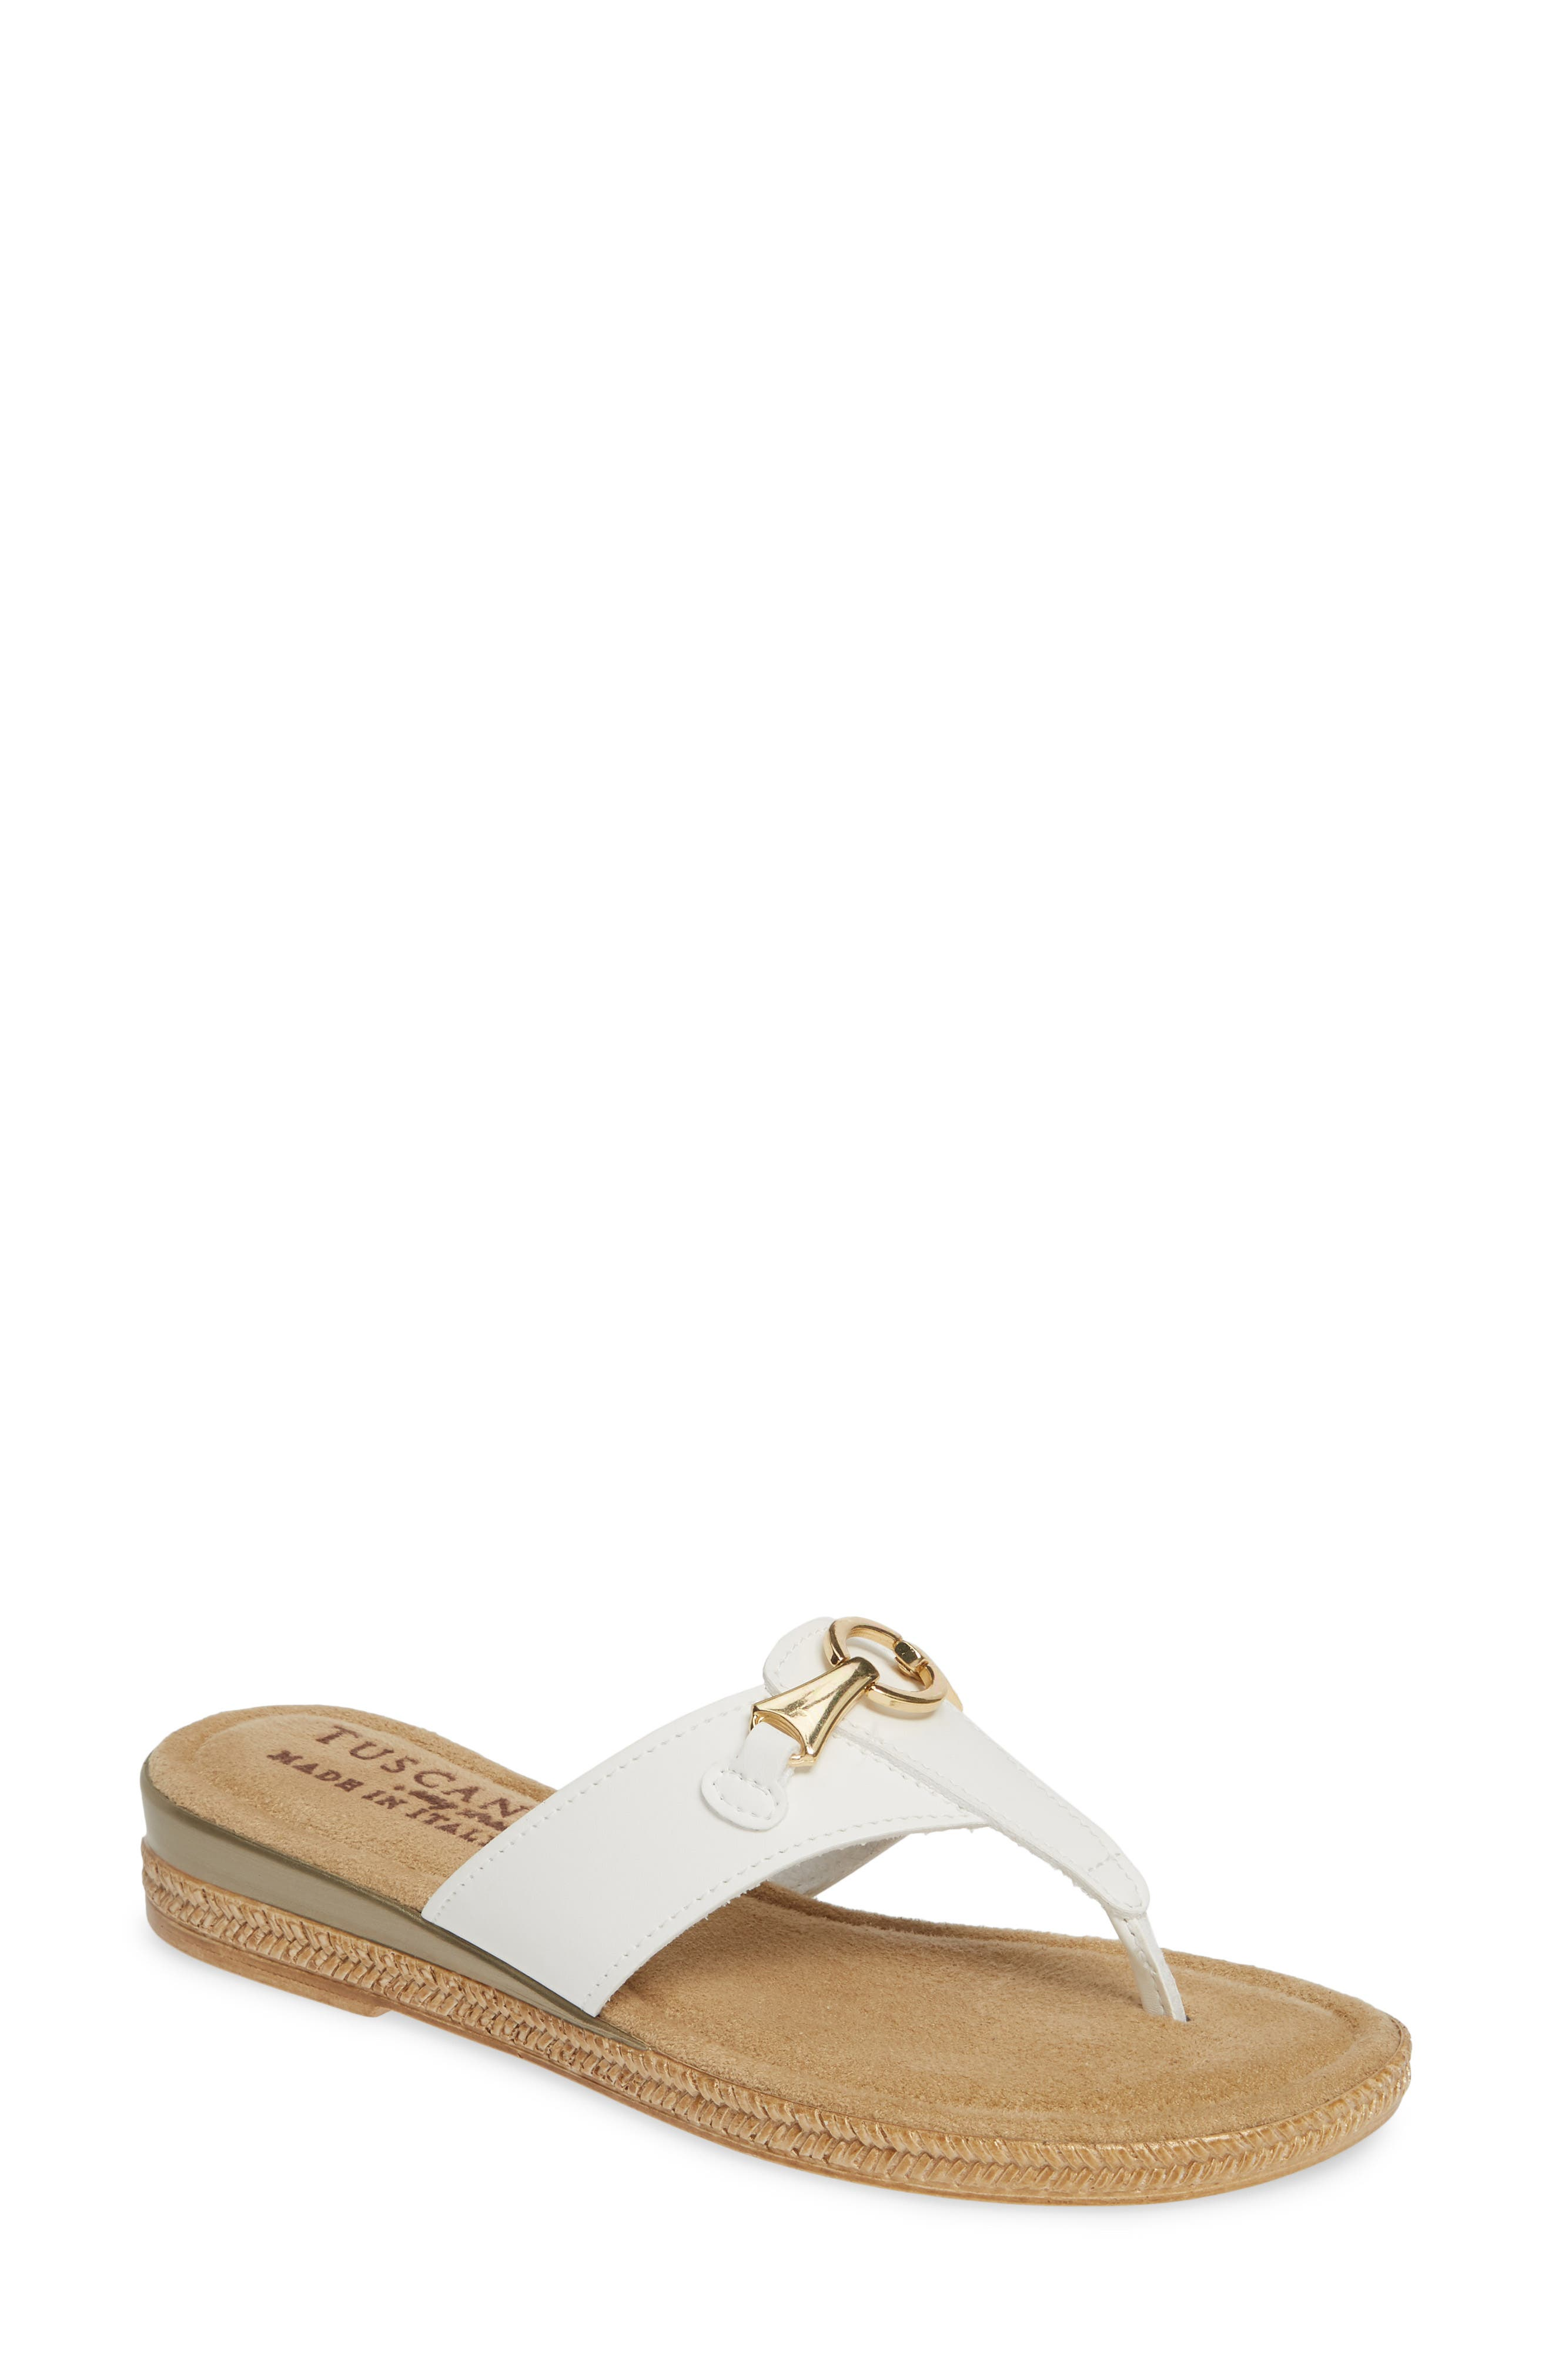 Tuscany By Easy Street Farah Flip Flop, White